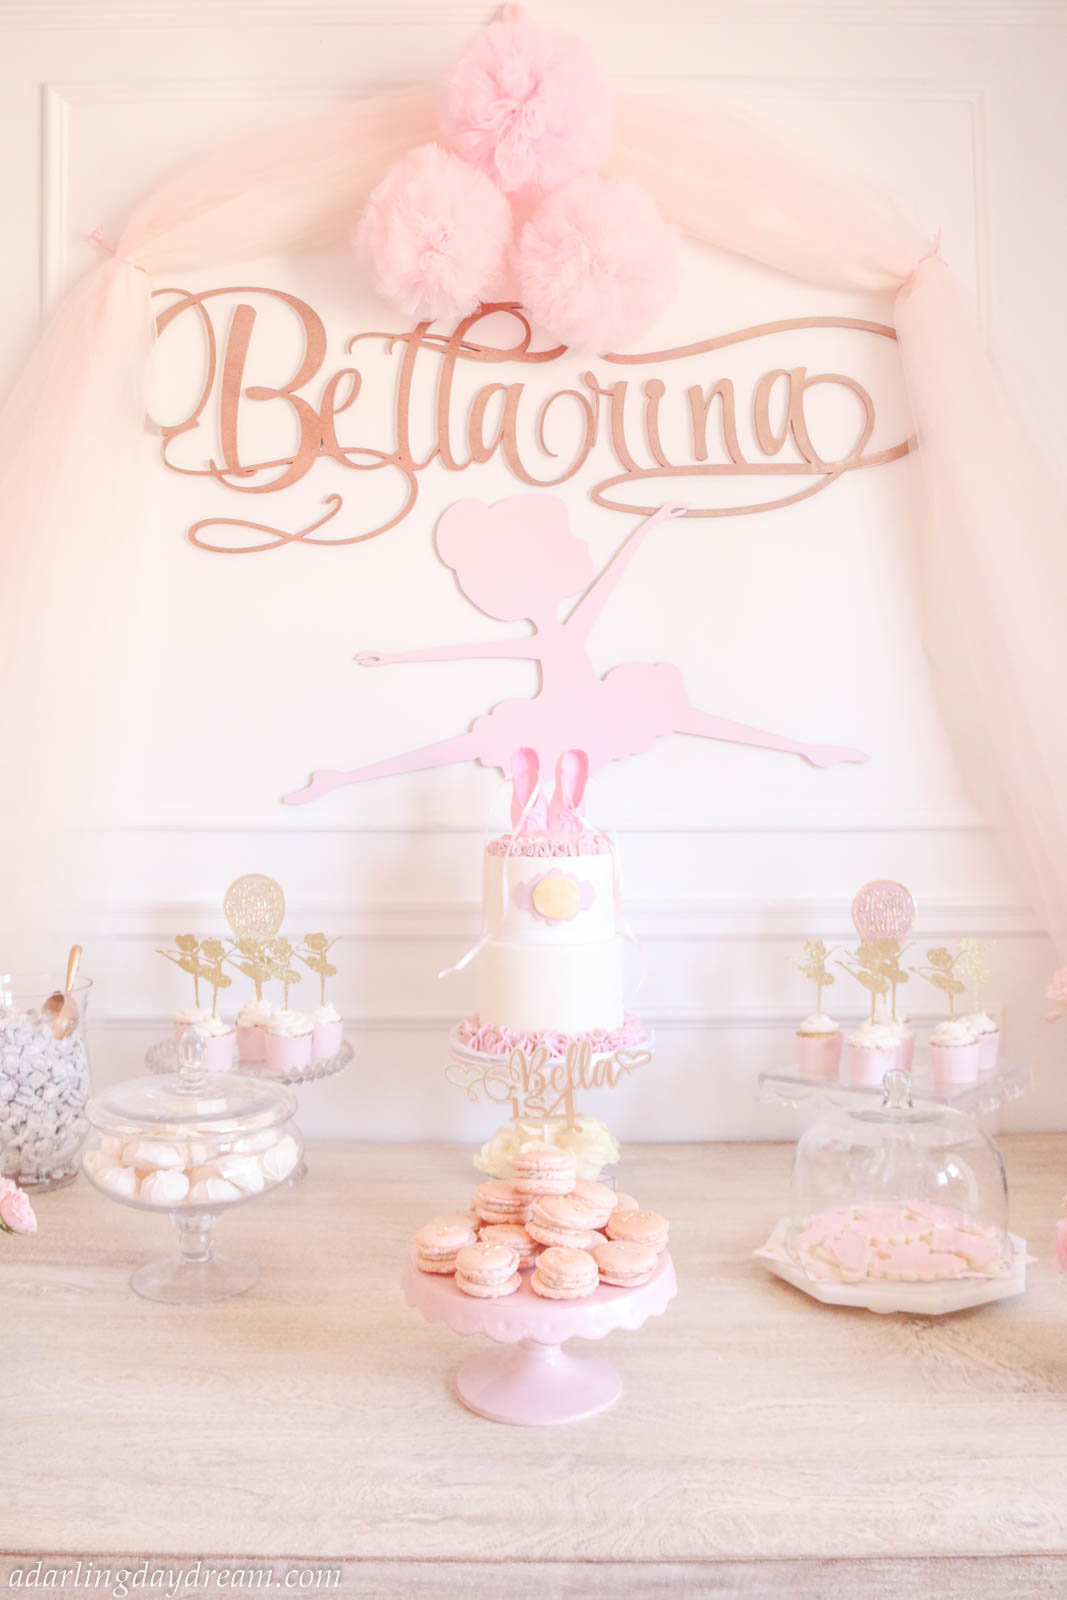 Bella-s-forth-birthday-party-ballerina-unicorn-49